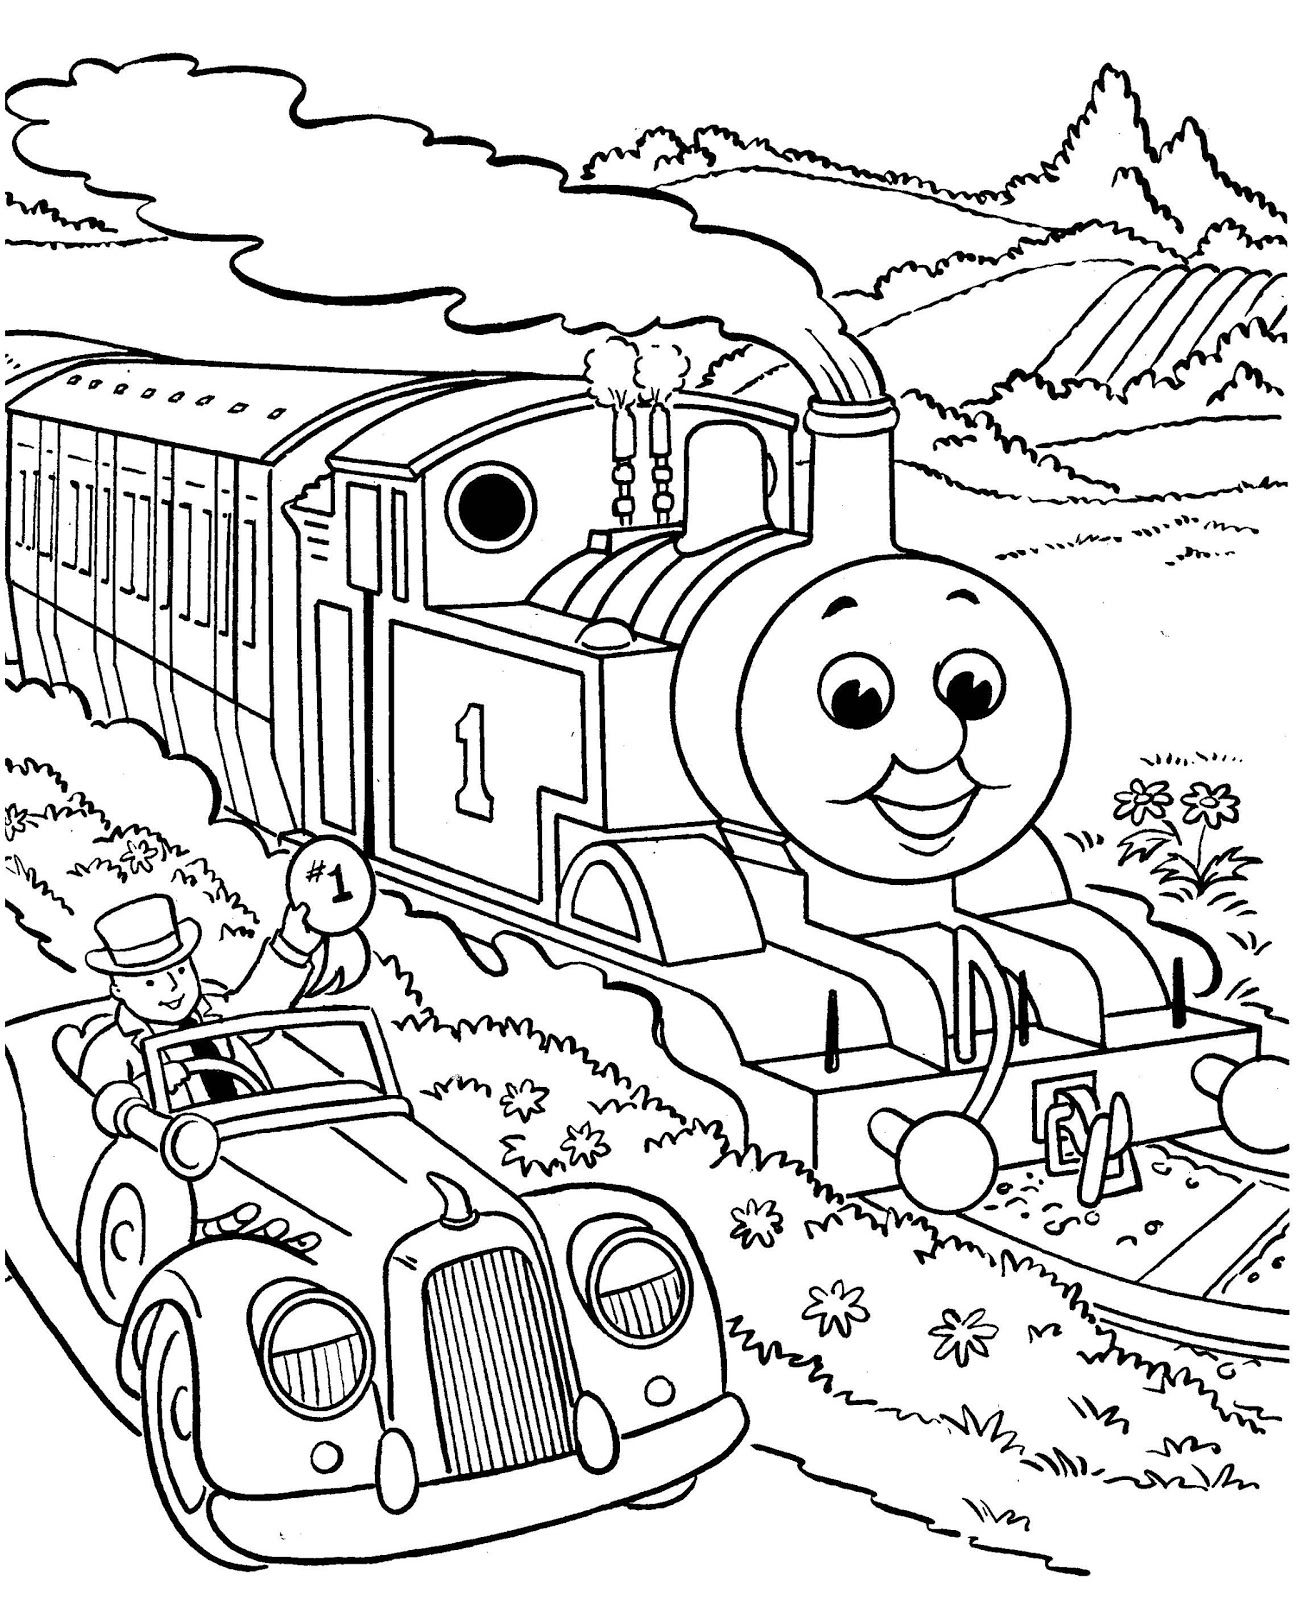 Free Printable Coloring Pages For All Ages Train Coloring Pages